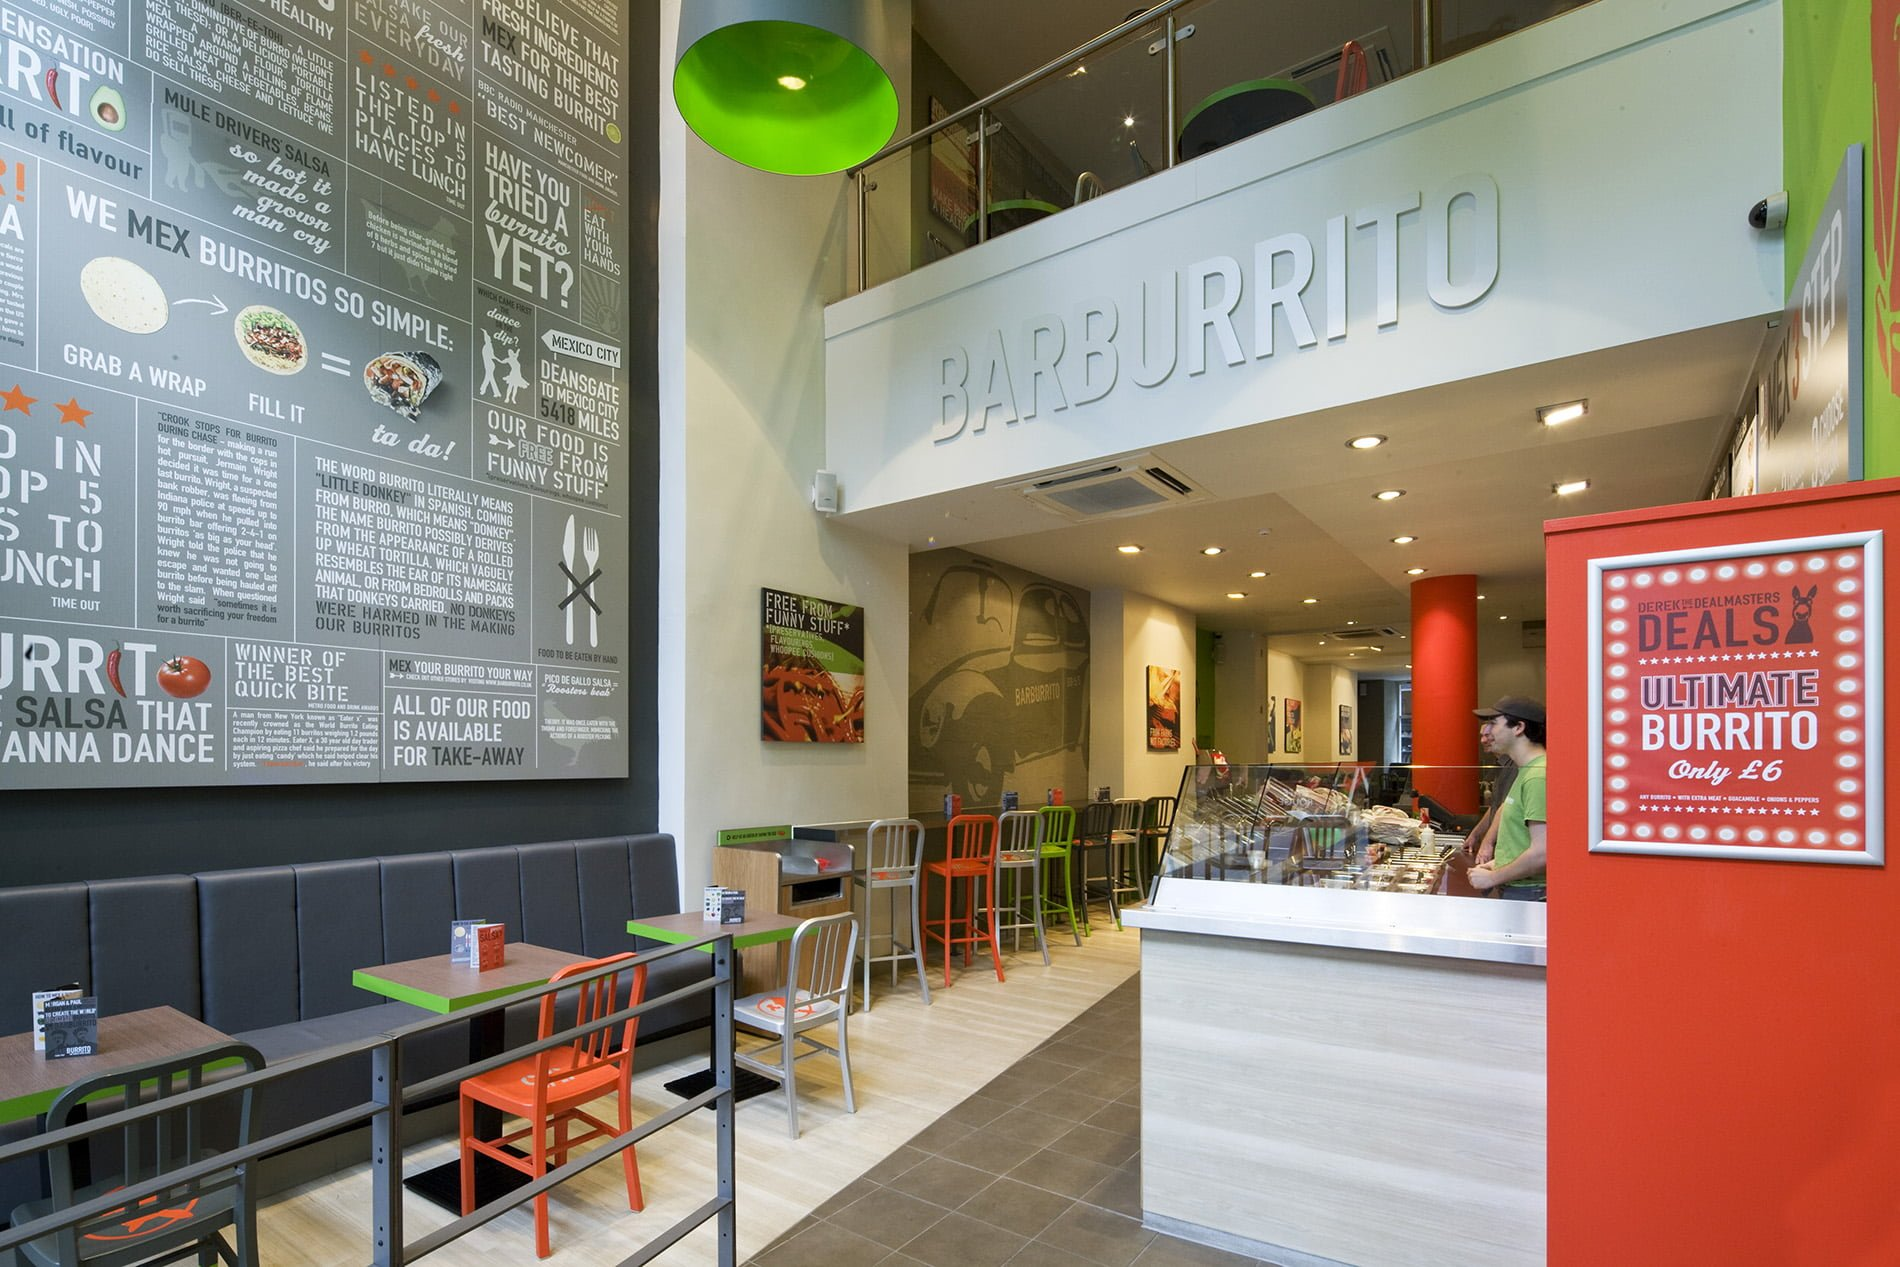 Barburrito interior design of restaurant